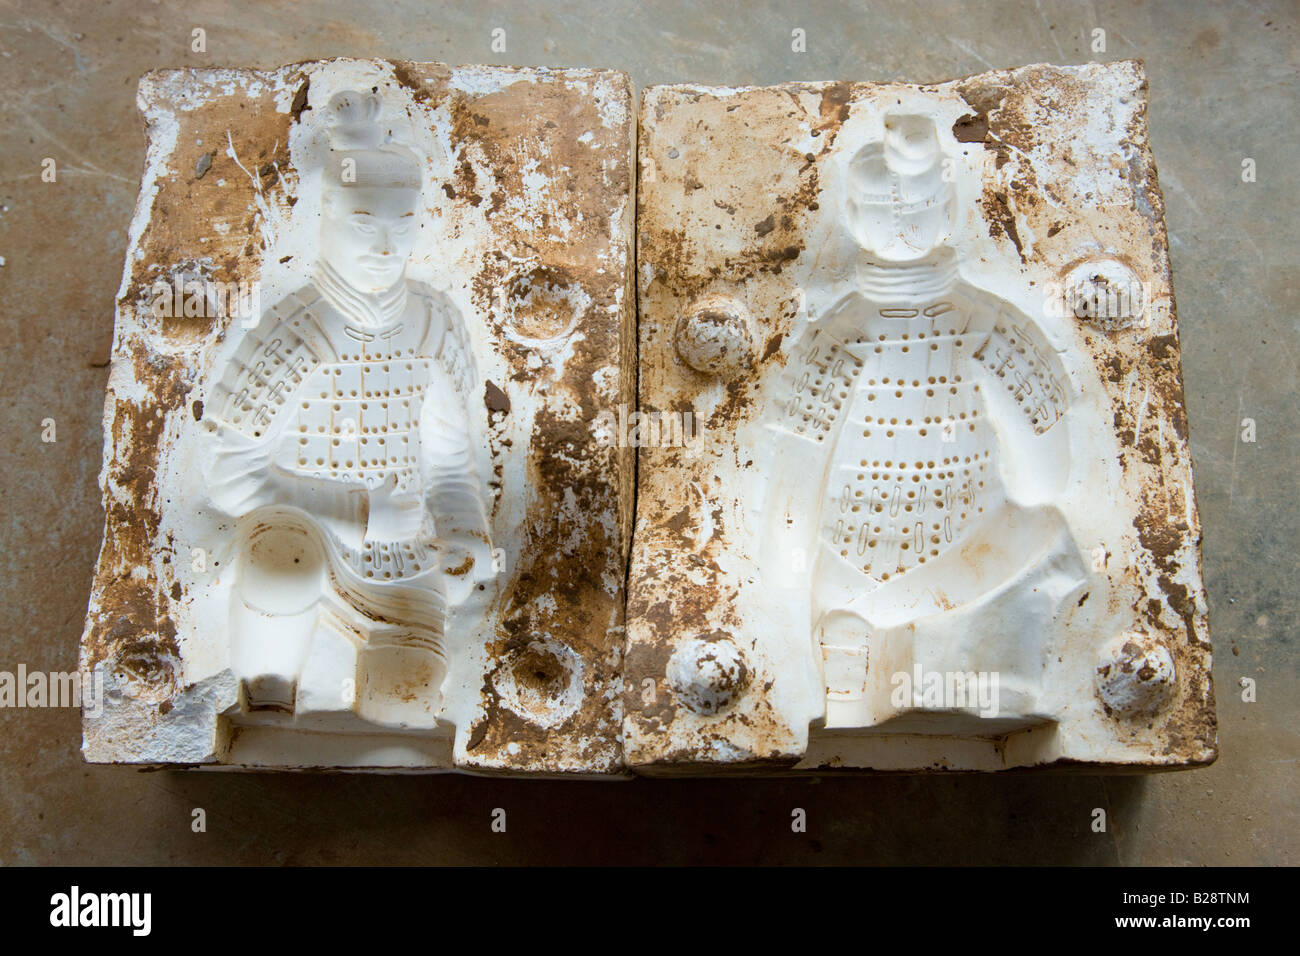 Mould used to make Terracotta Warriors souvenirs in factory Xian China - Stock Image